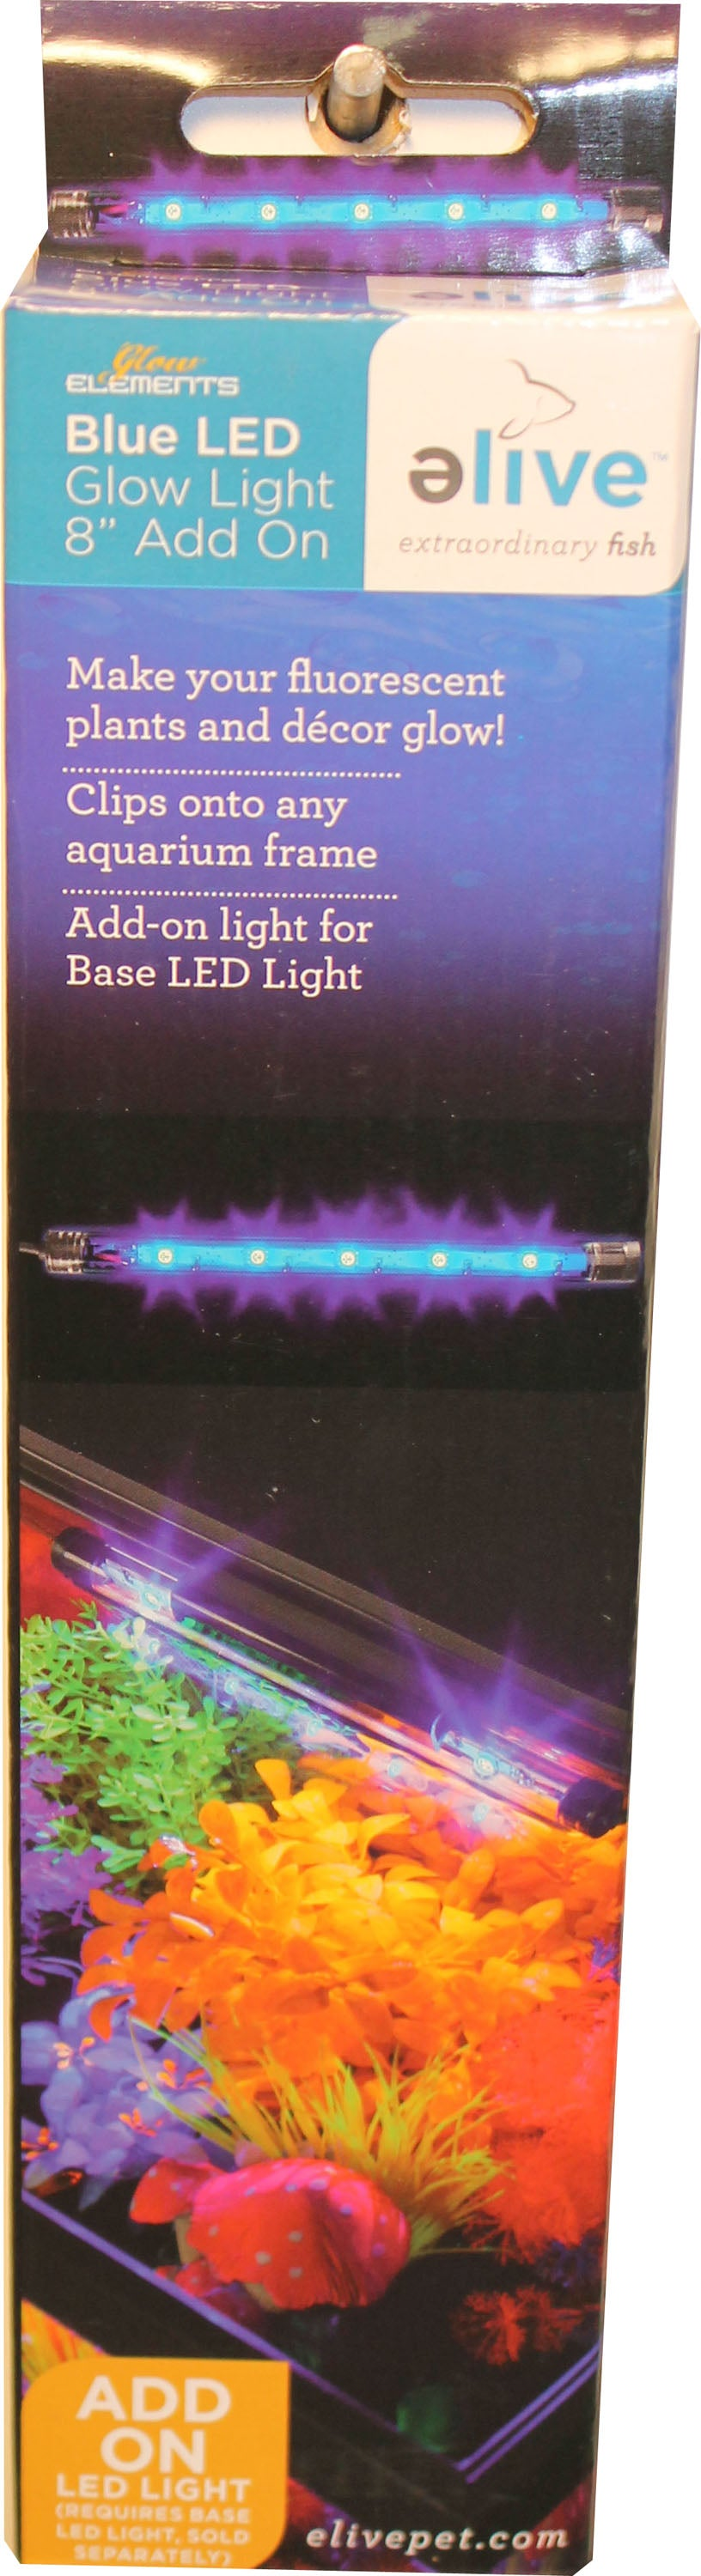 Glow Elements Blue Led Glow Light Add On